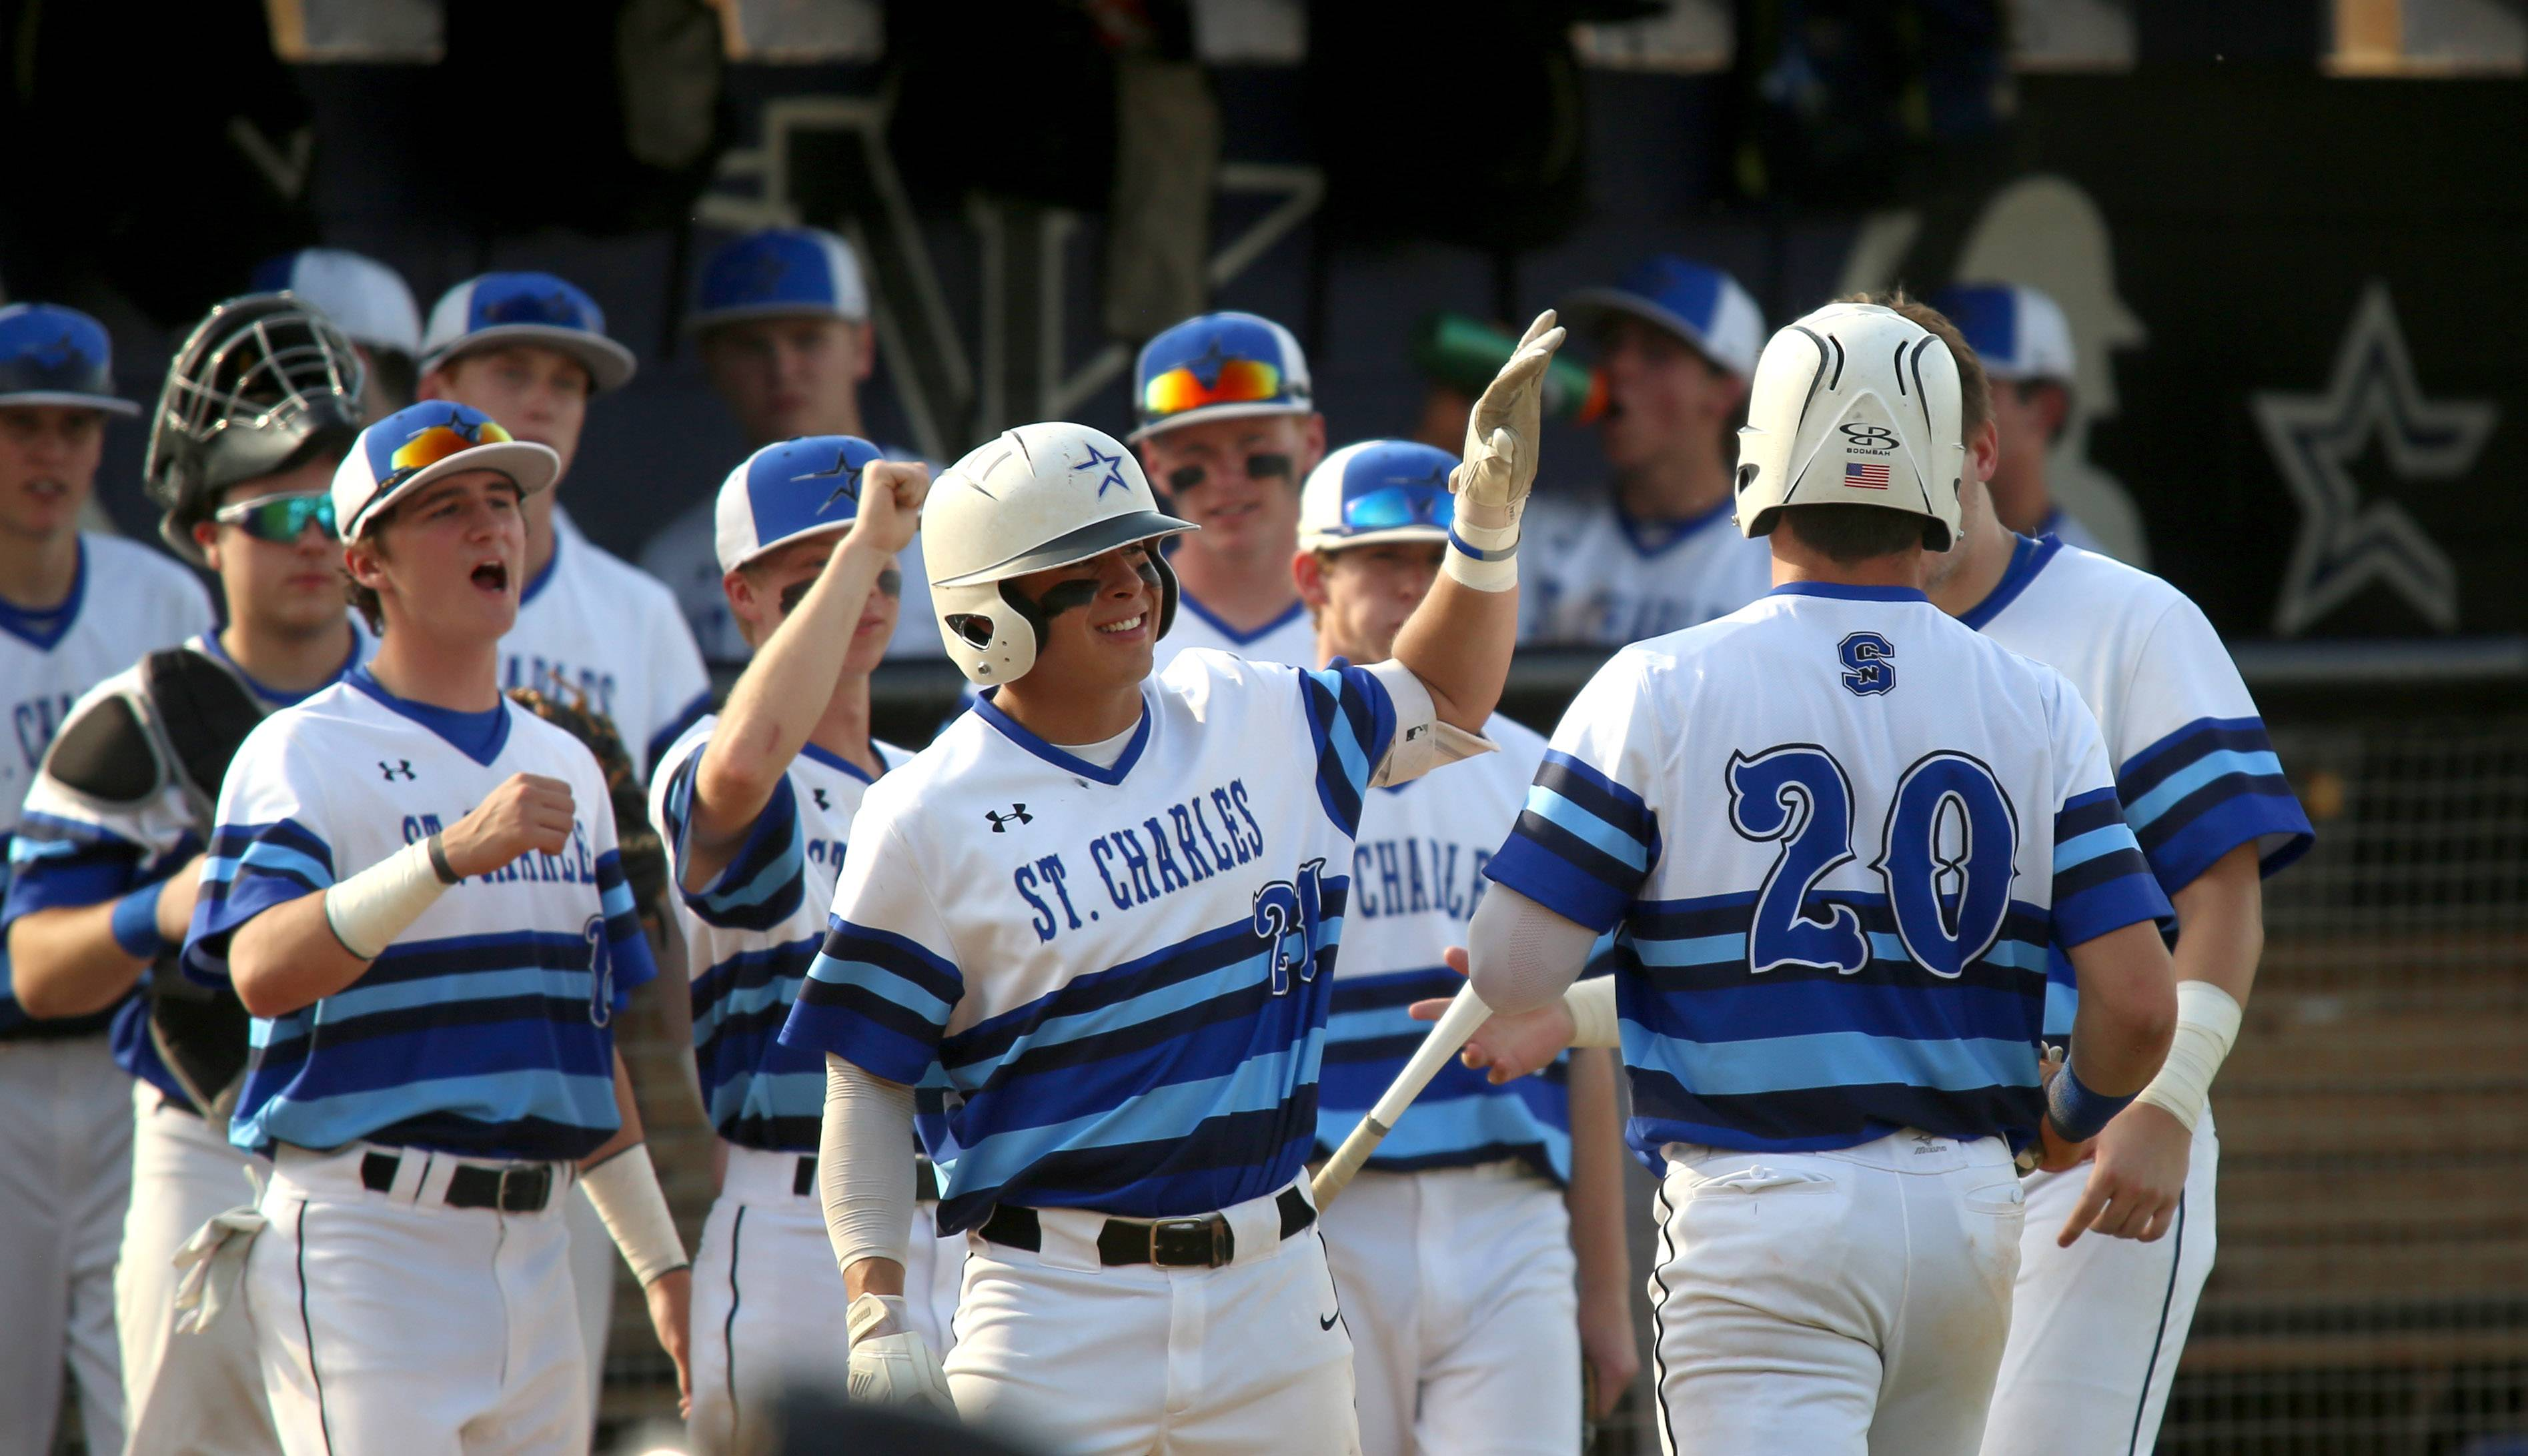 The St. Charles North Stars react after Tyler Mettetal scores against St. Charles East during varsity baseball at St. Charles North Monday evening.